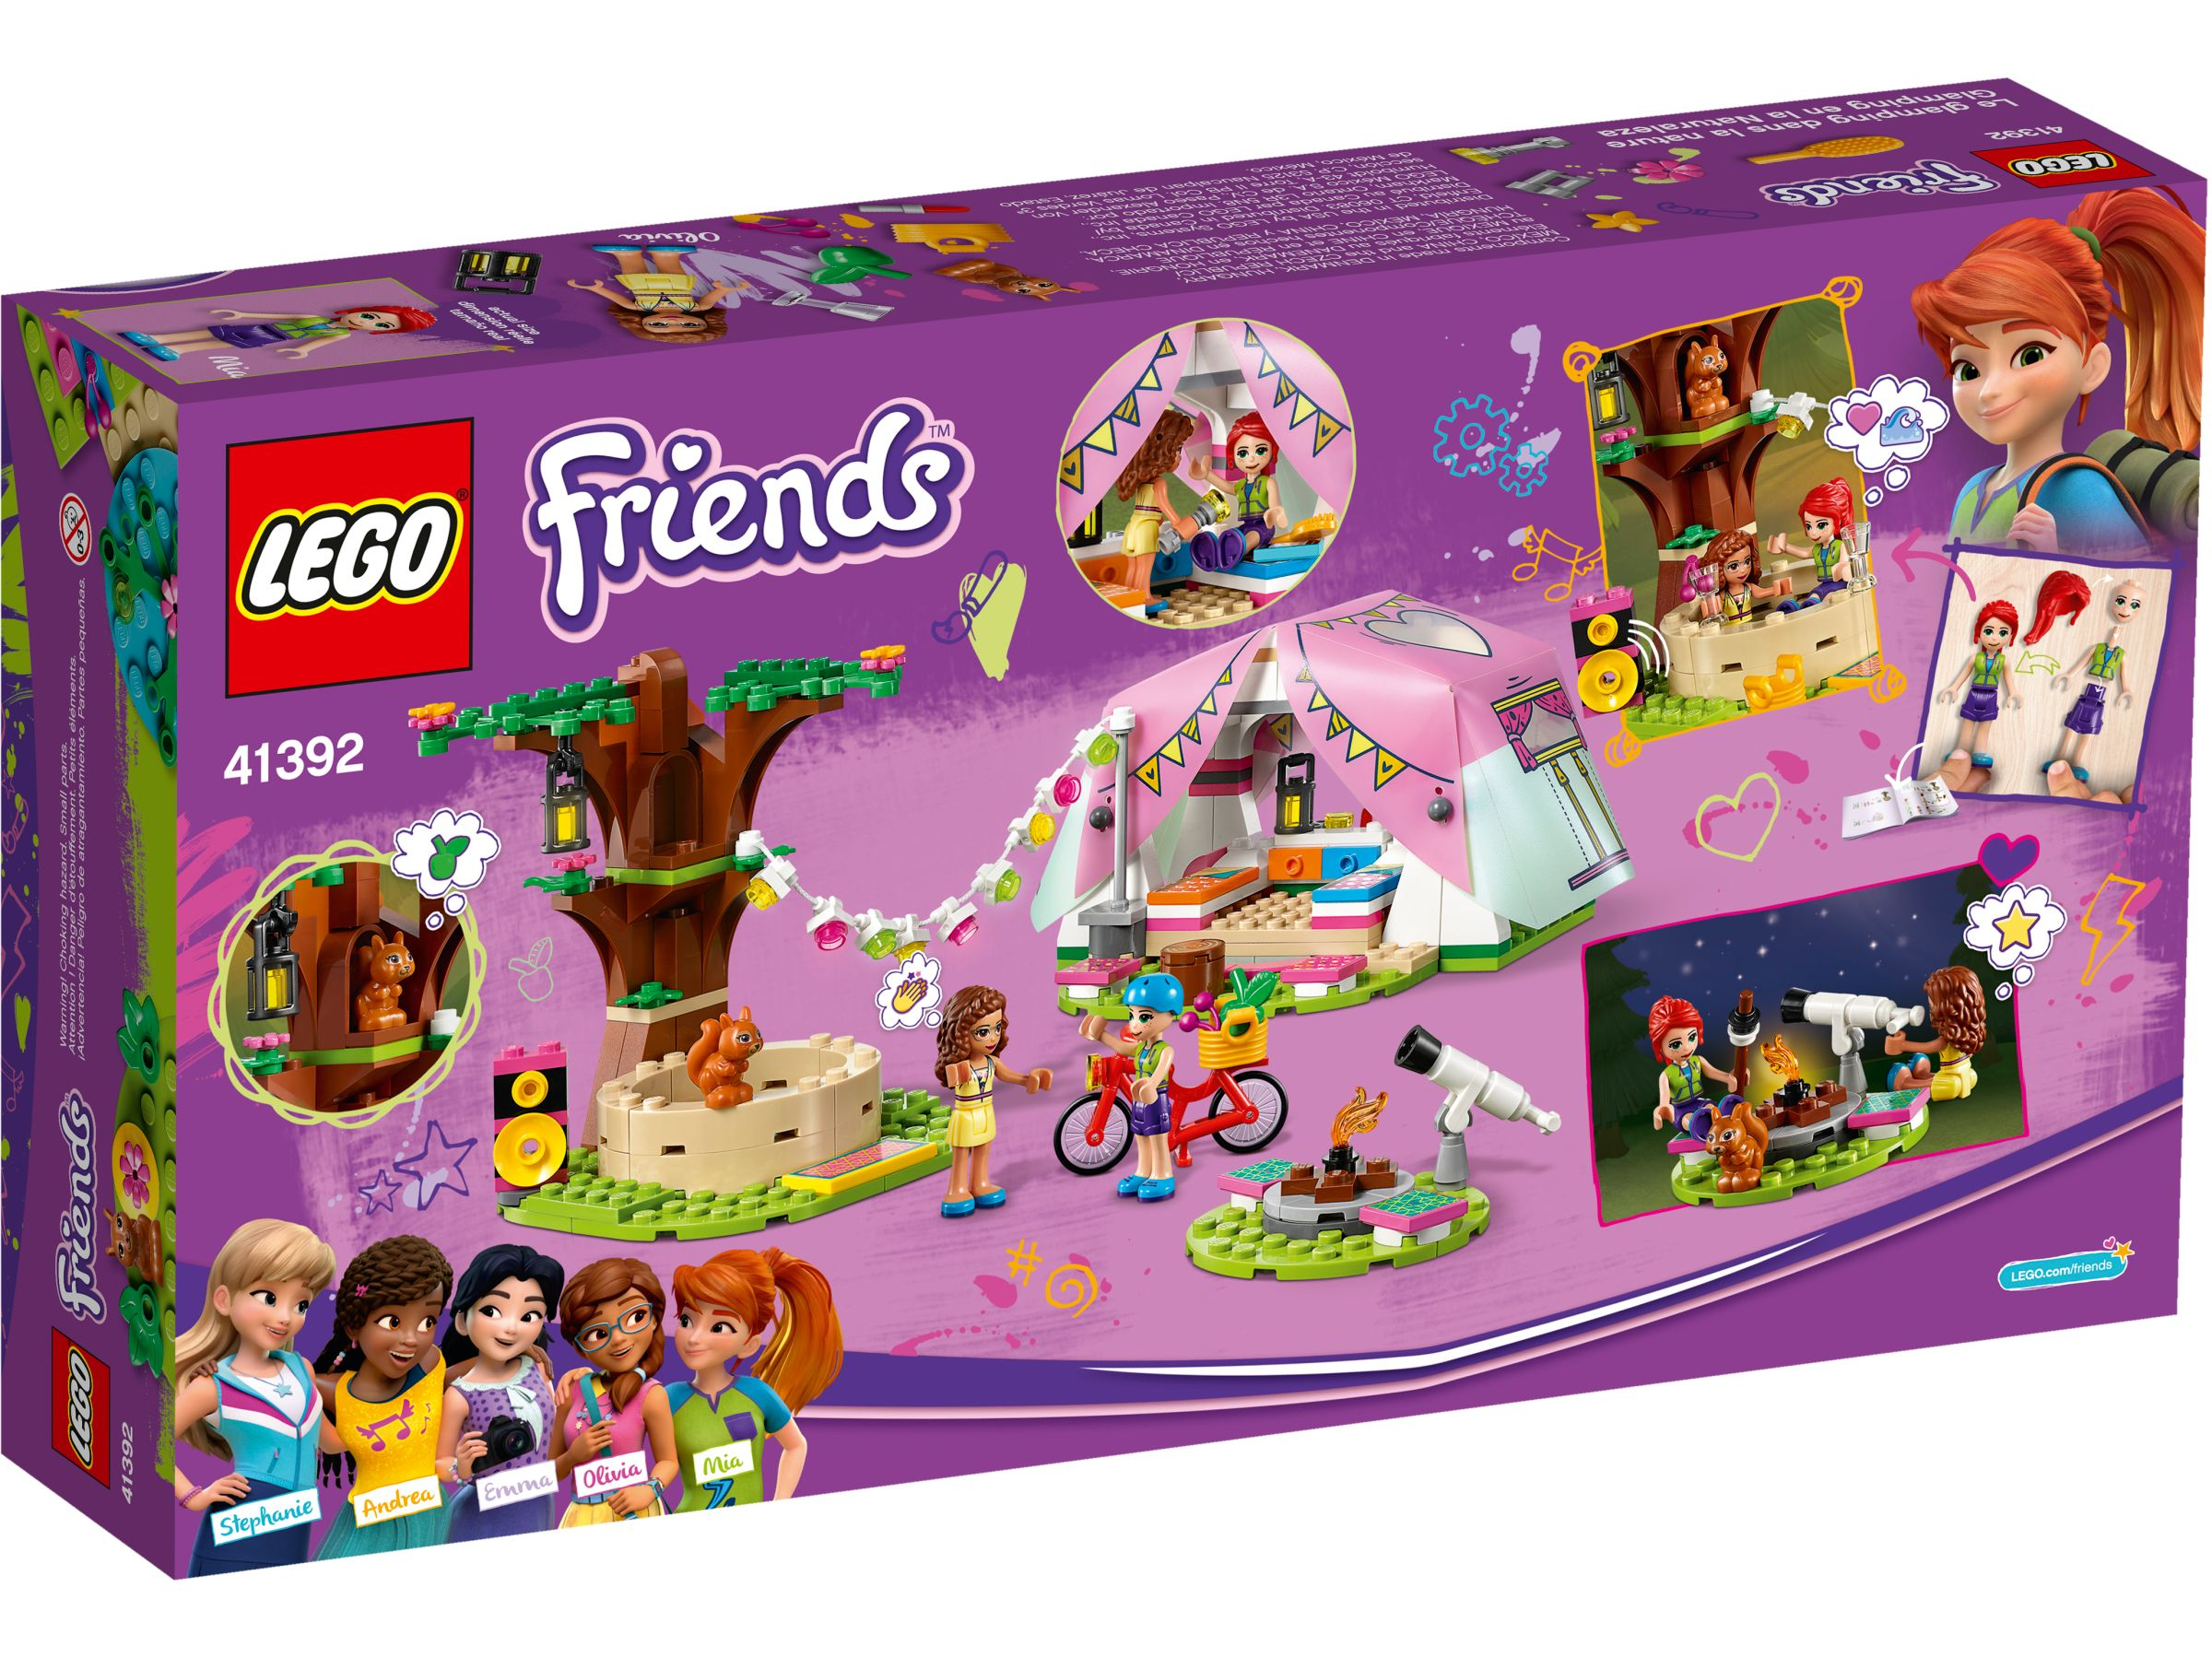 LEGO Friends 41392 Camping in Heartlake City LEGO_41392_alt4.jpg